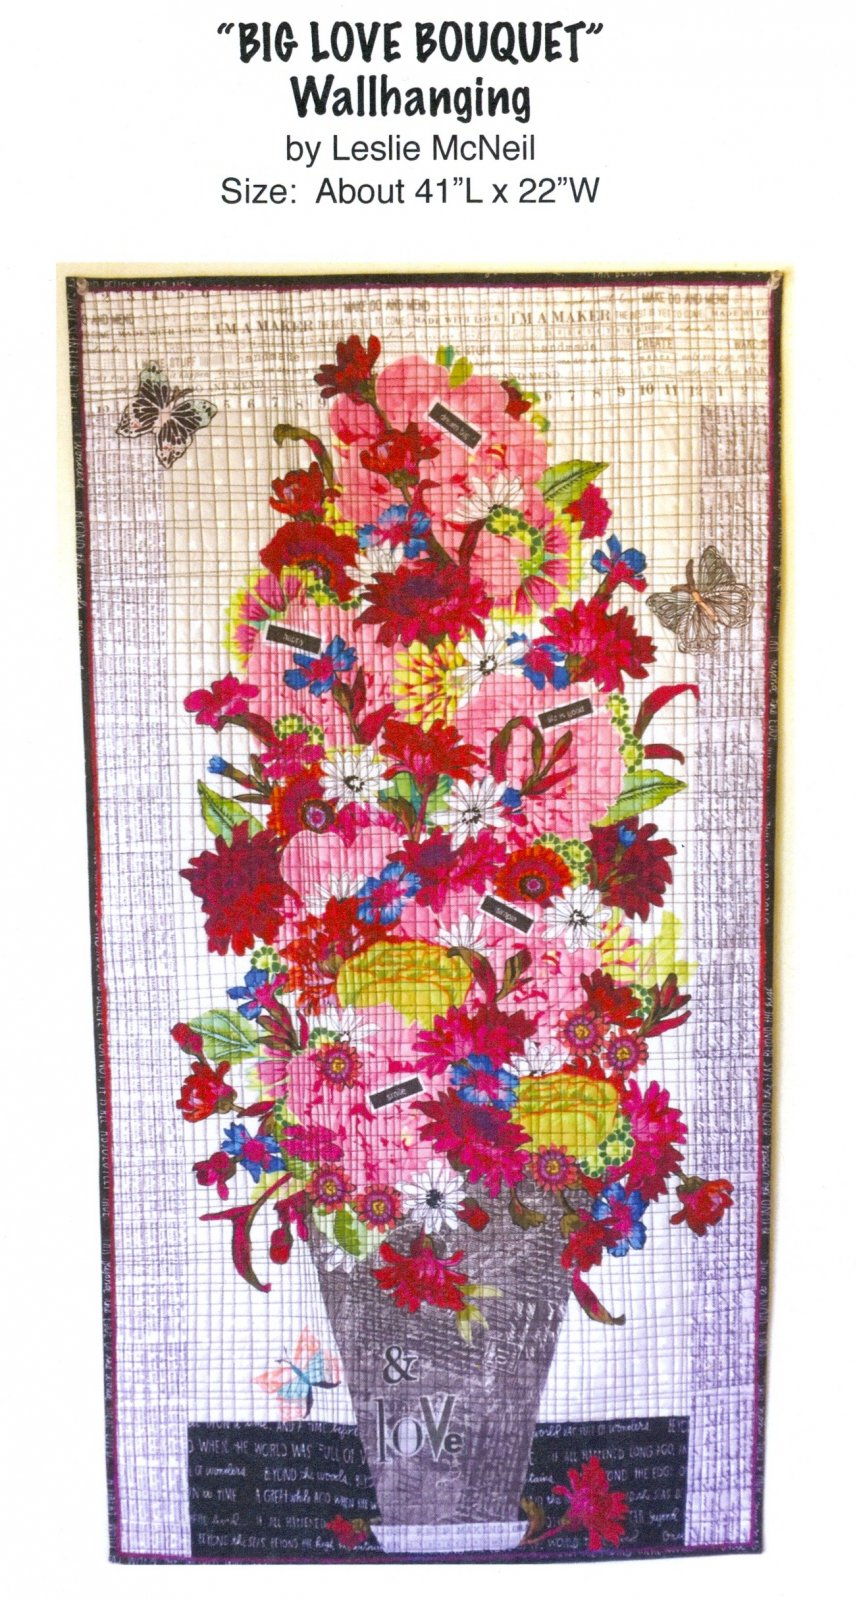 Big Love Bouquet Collage Wall Hanging Pattern by Leslie McNeil